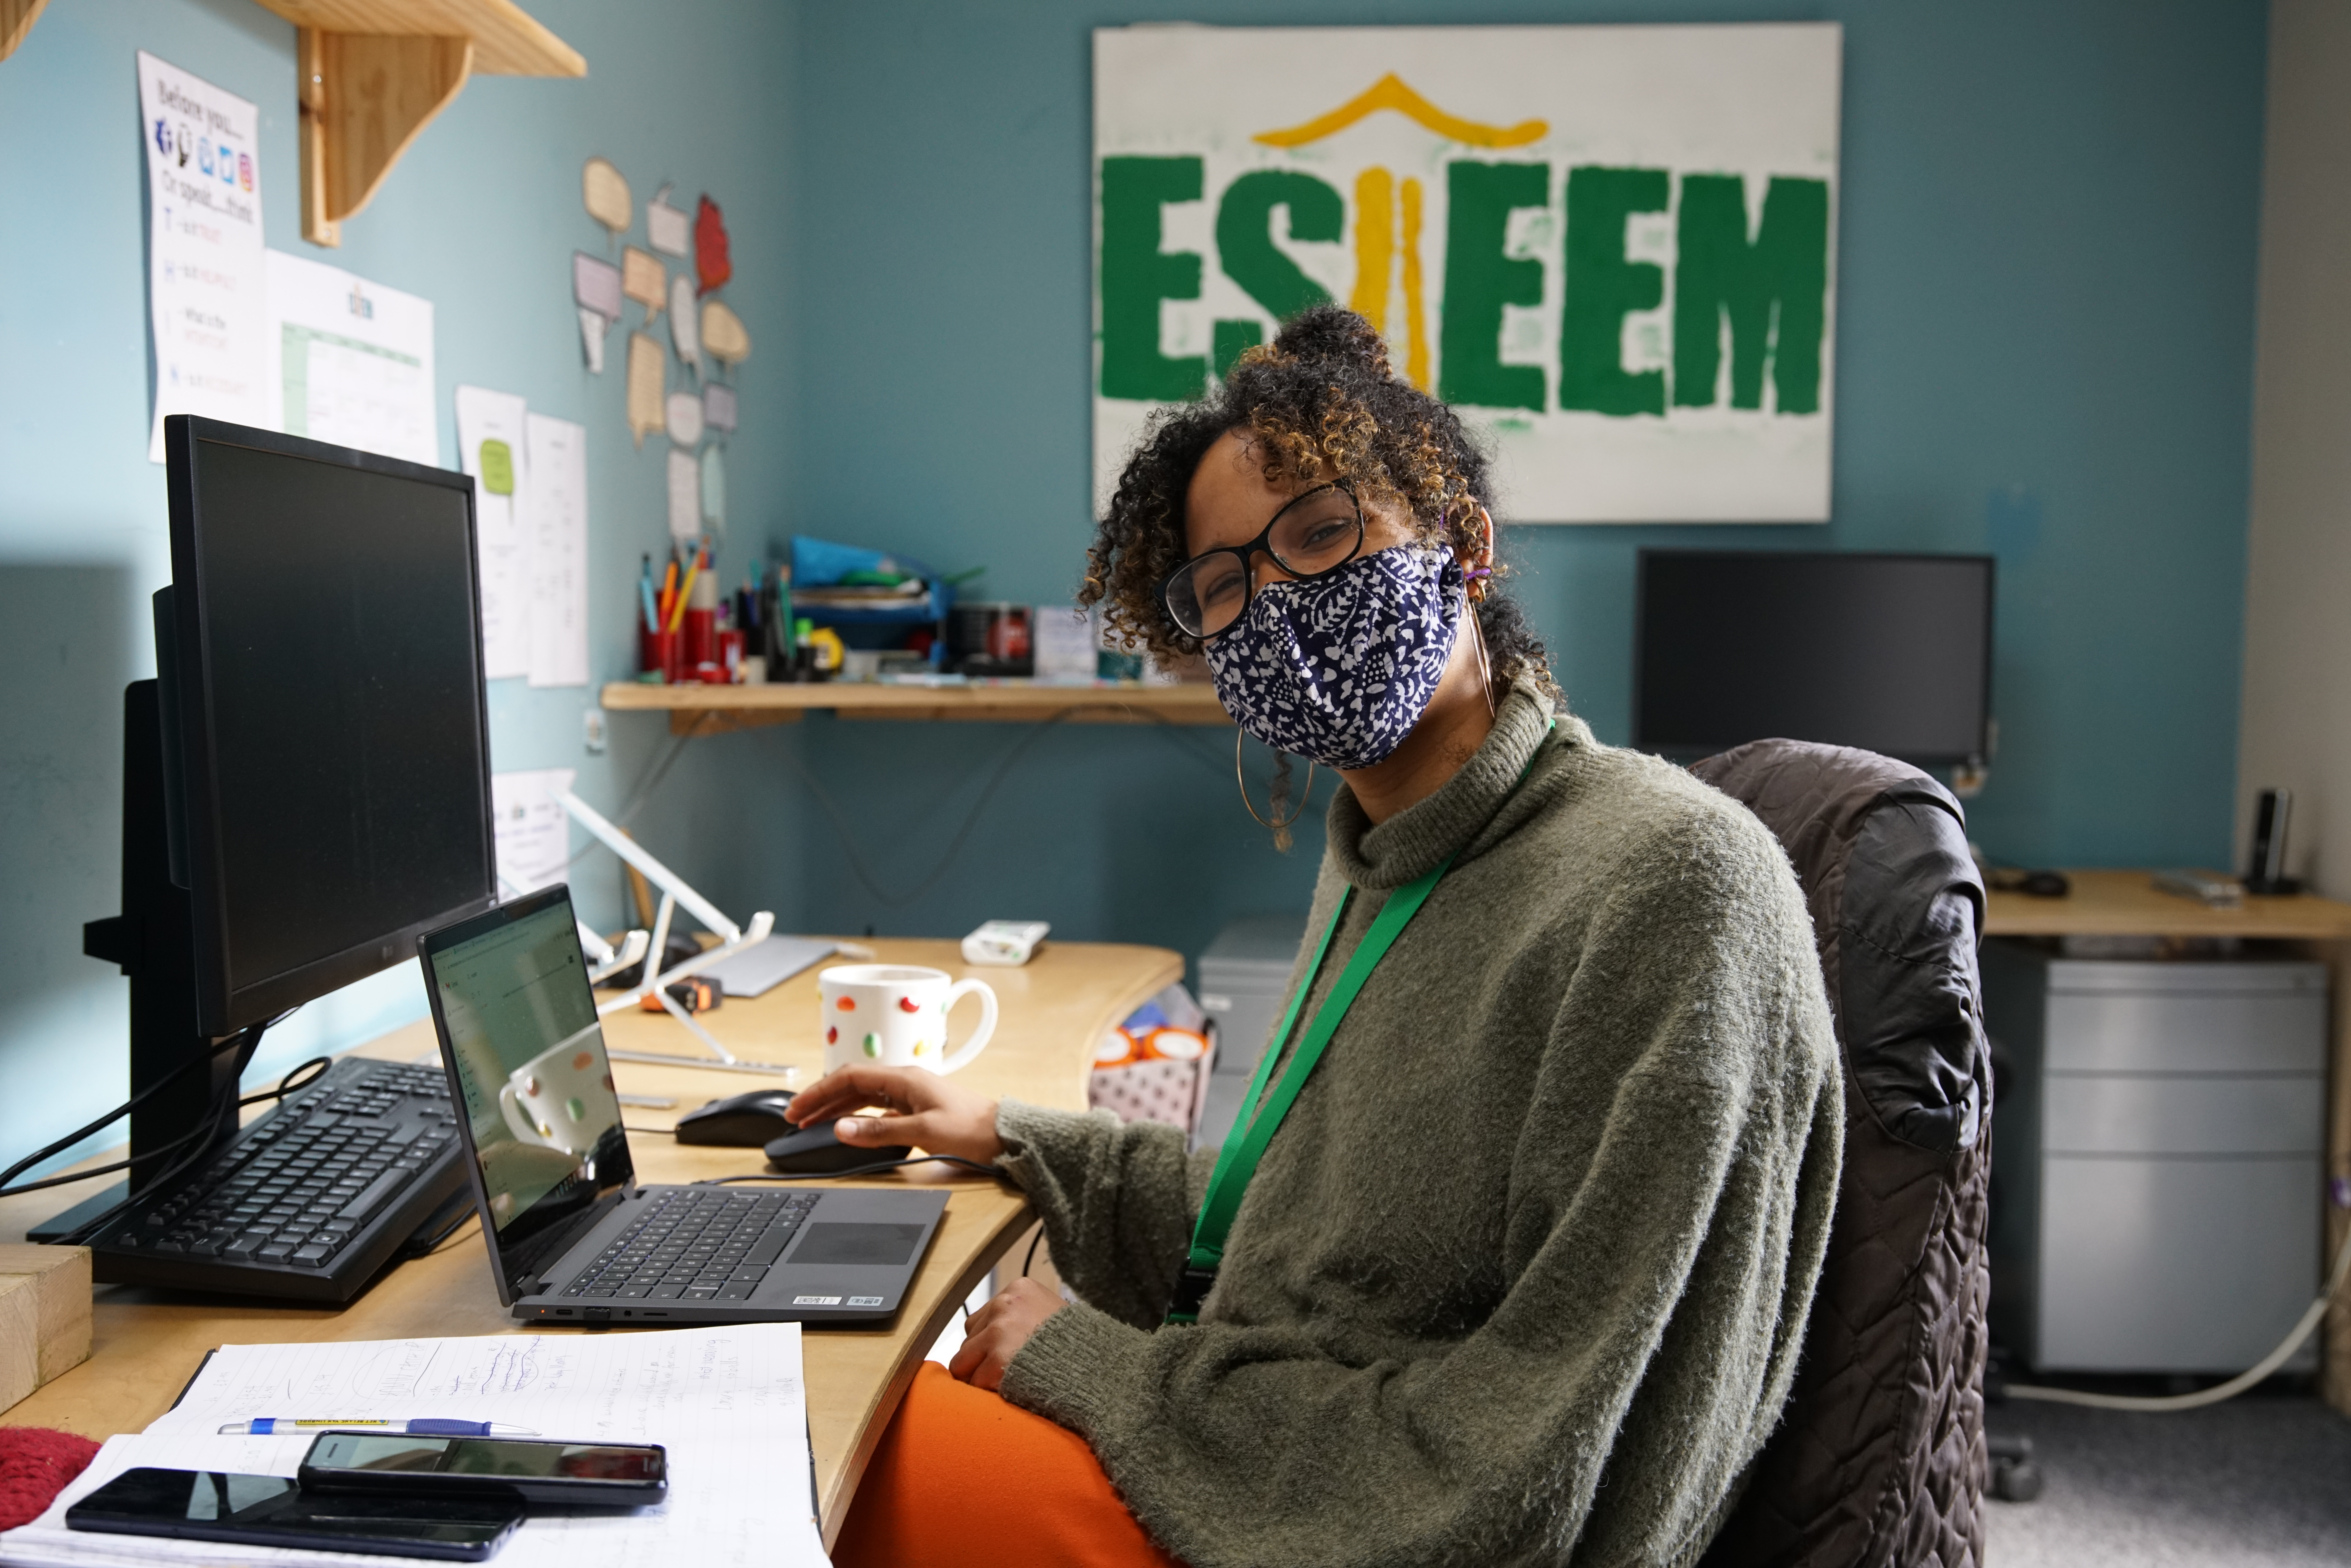 Staff Member smiling with mask on in the office